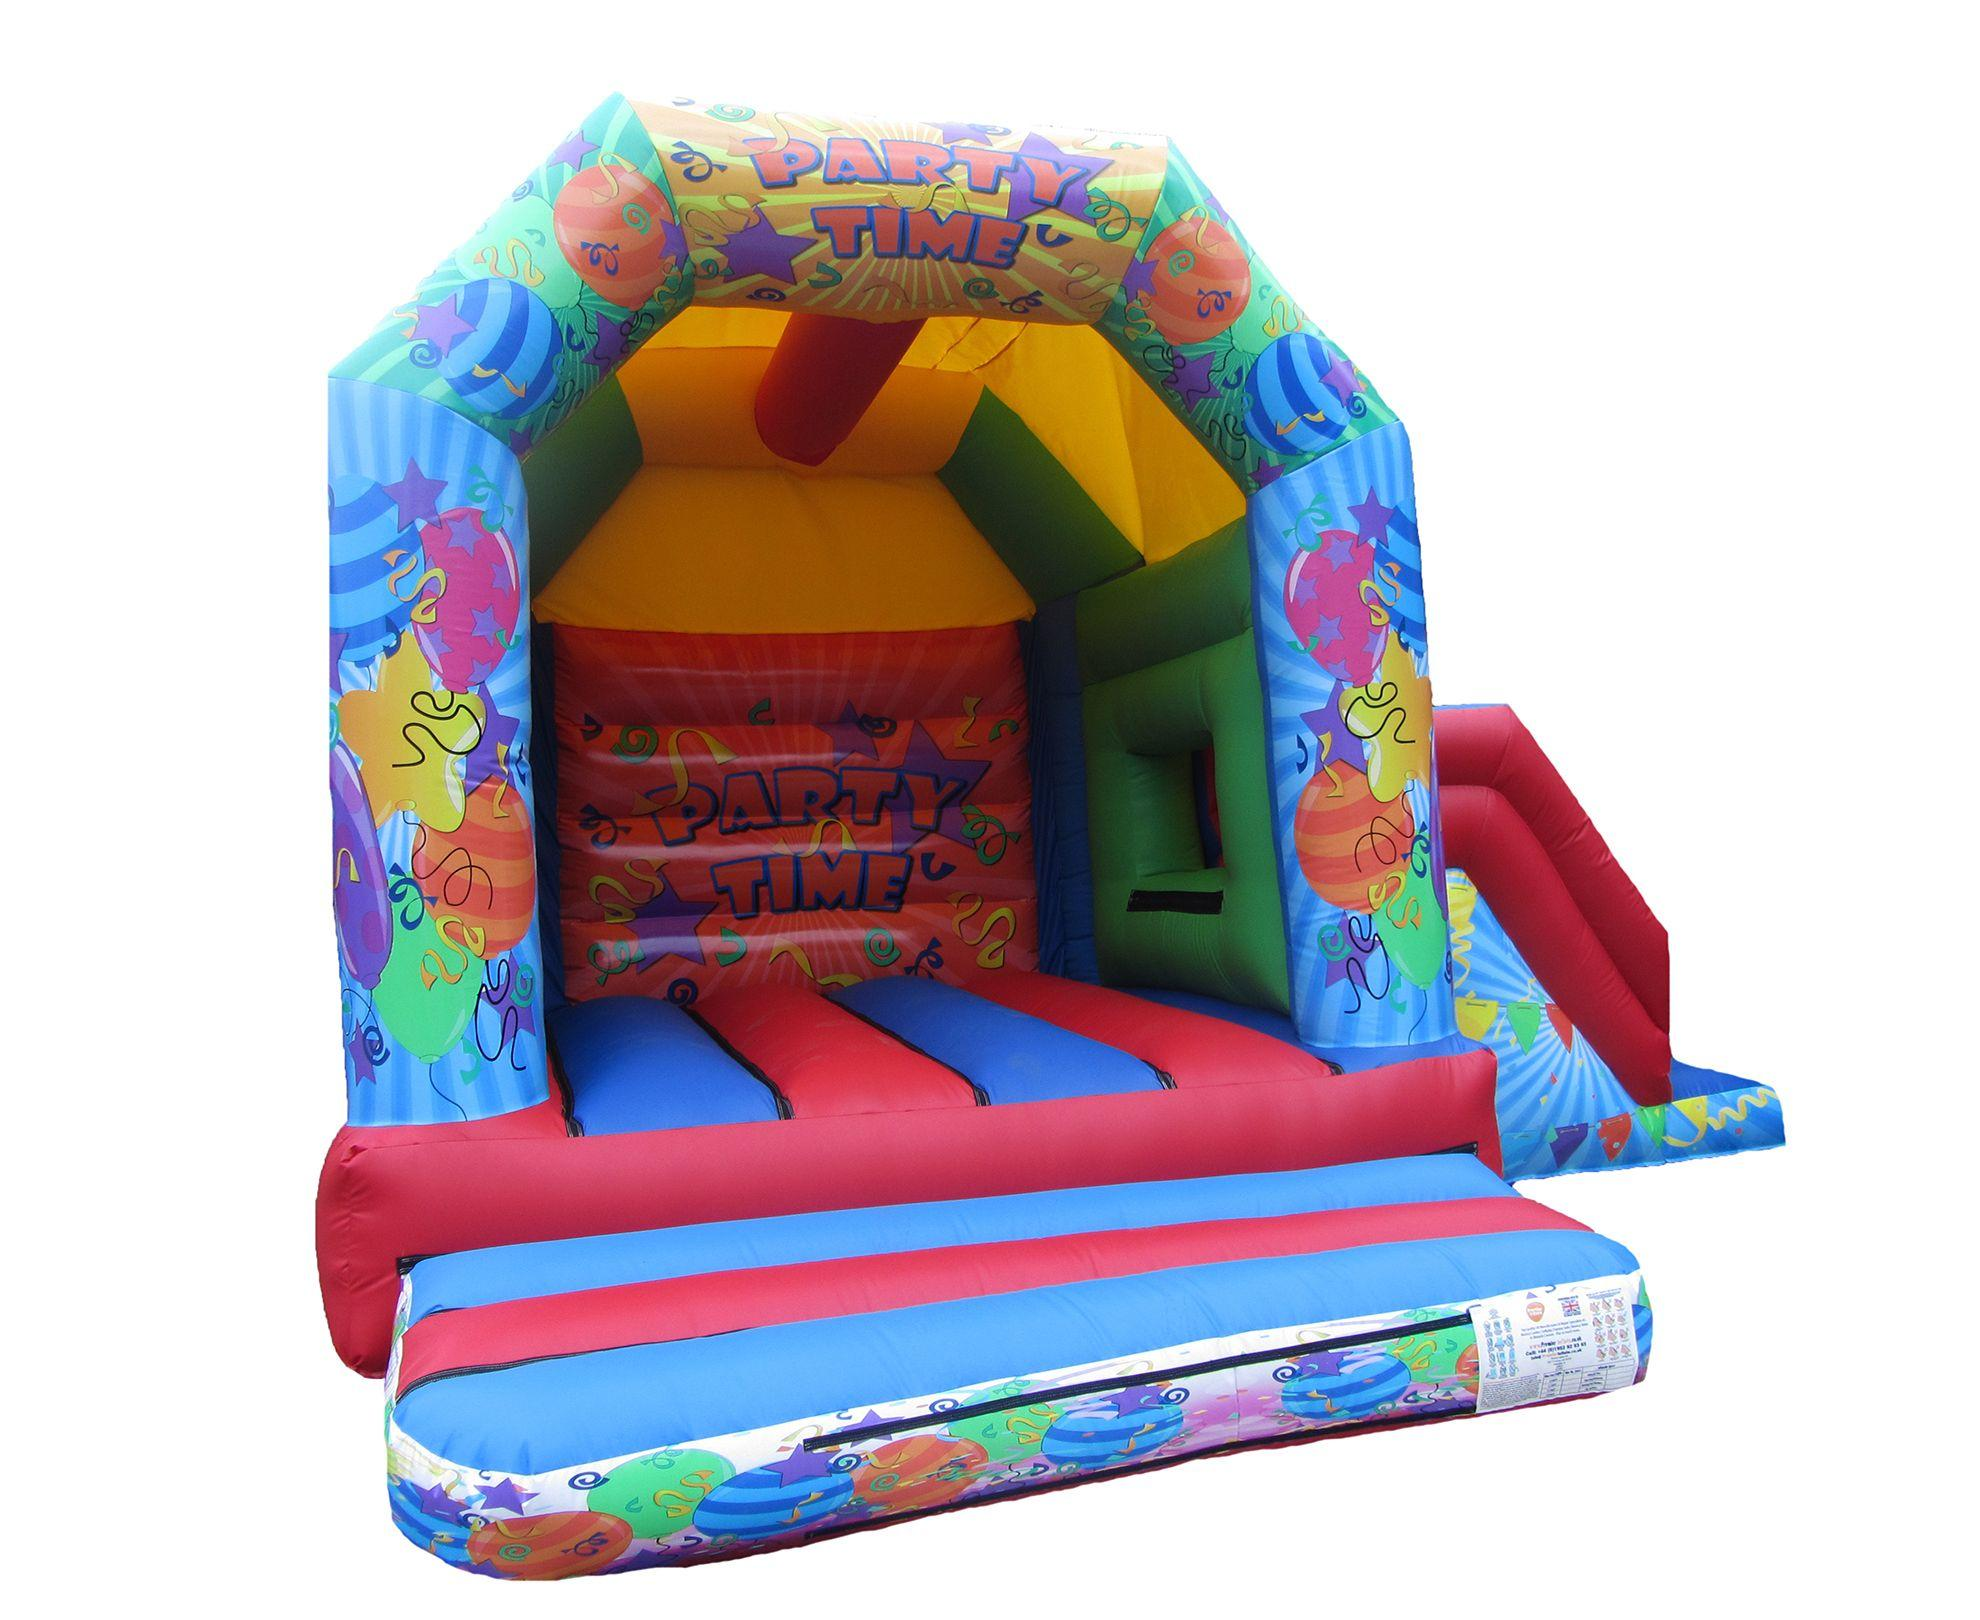 17x15 unisex printed party combi bouncy castle compressor Copy